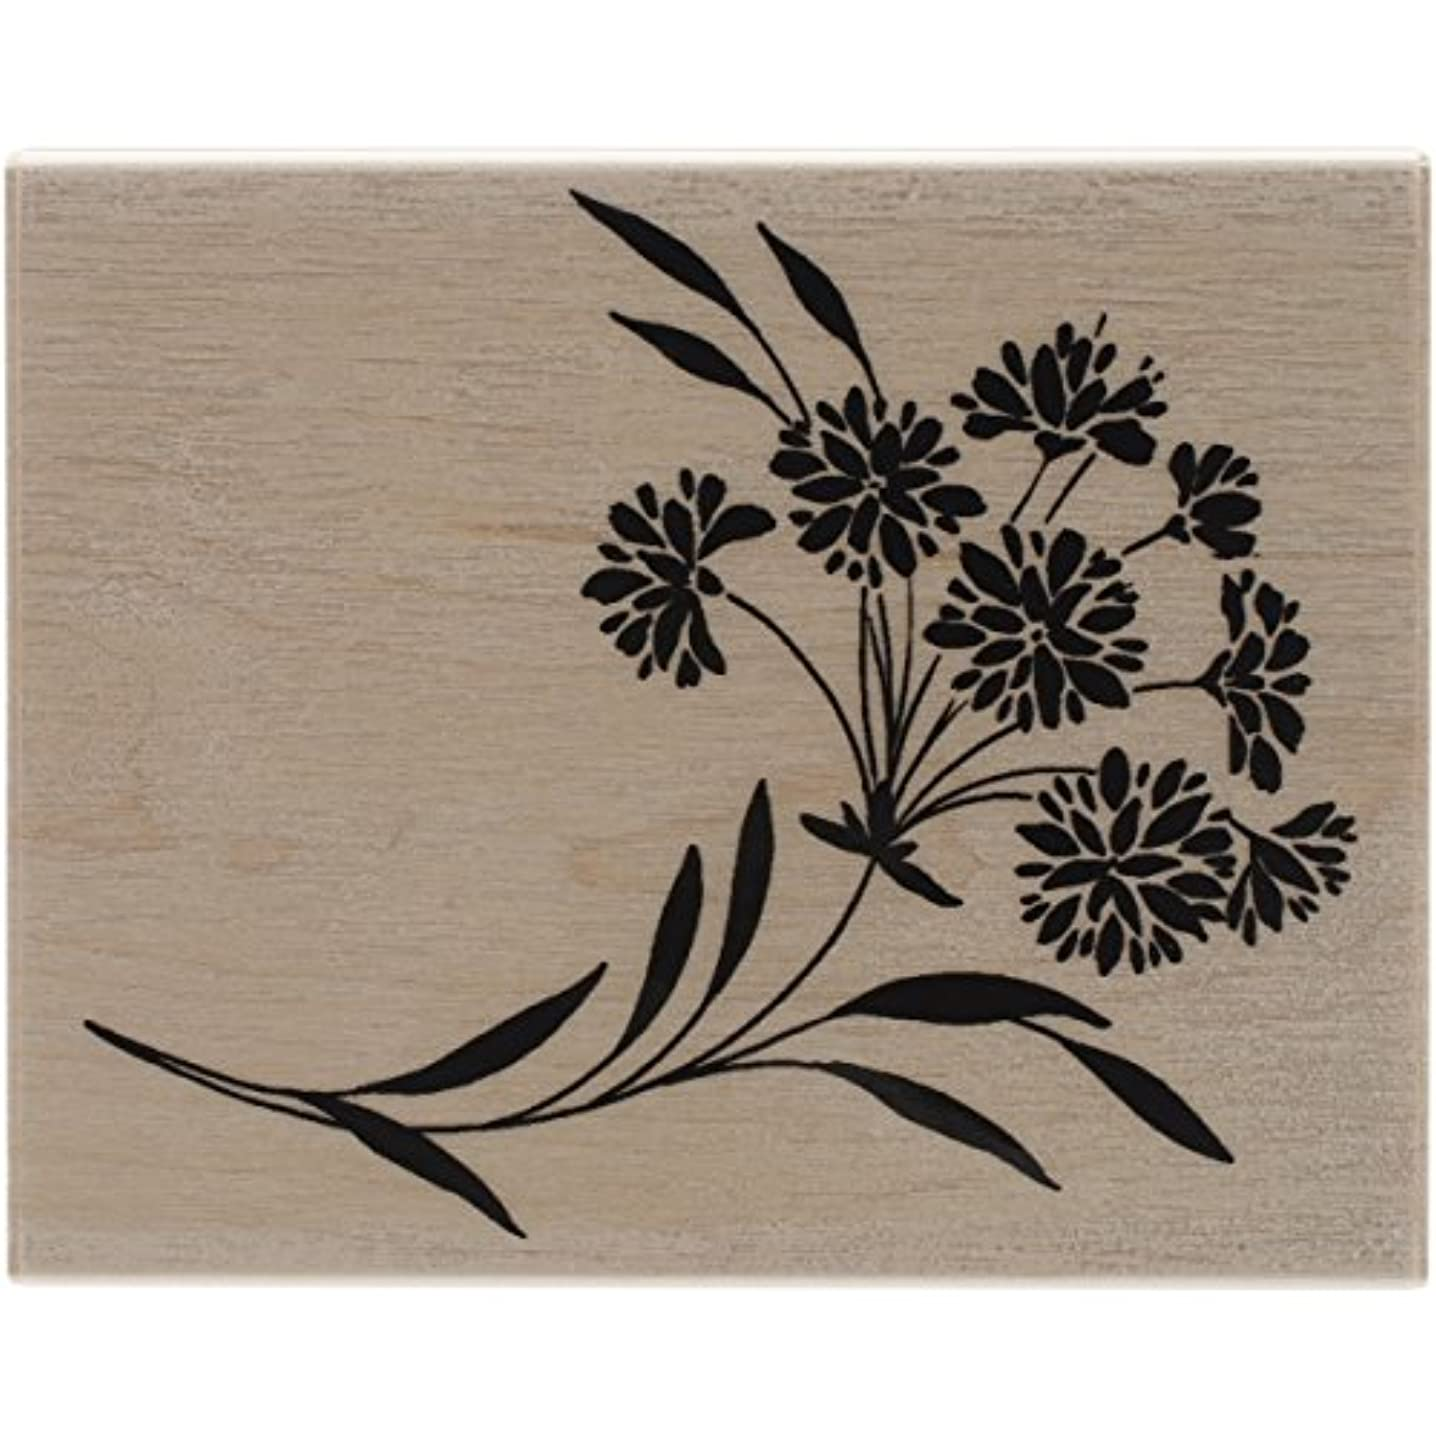 Penny Black 4403K Ebullient Wood Mounted Rubber Stamp